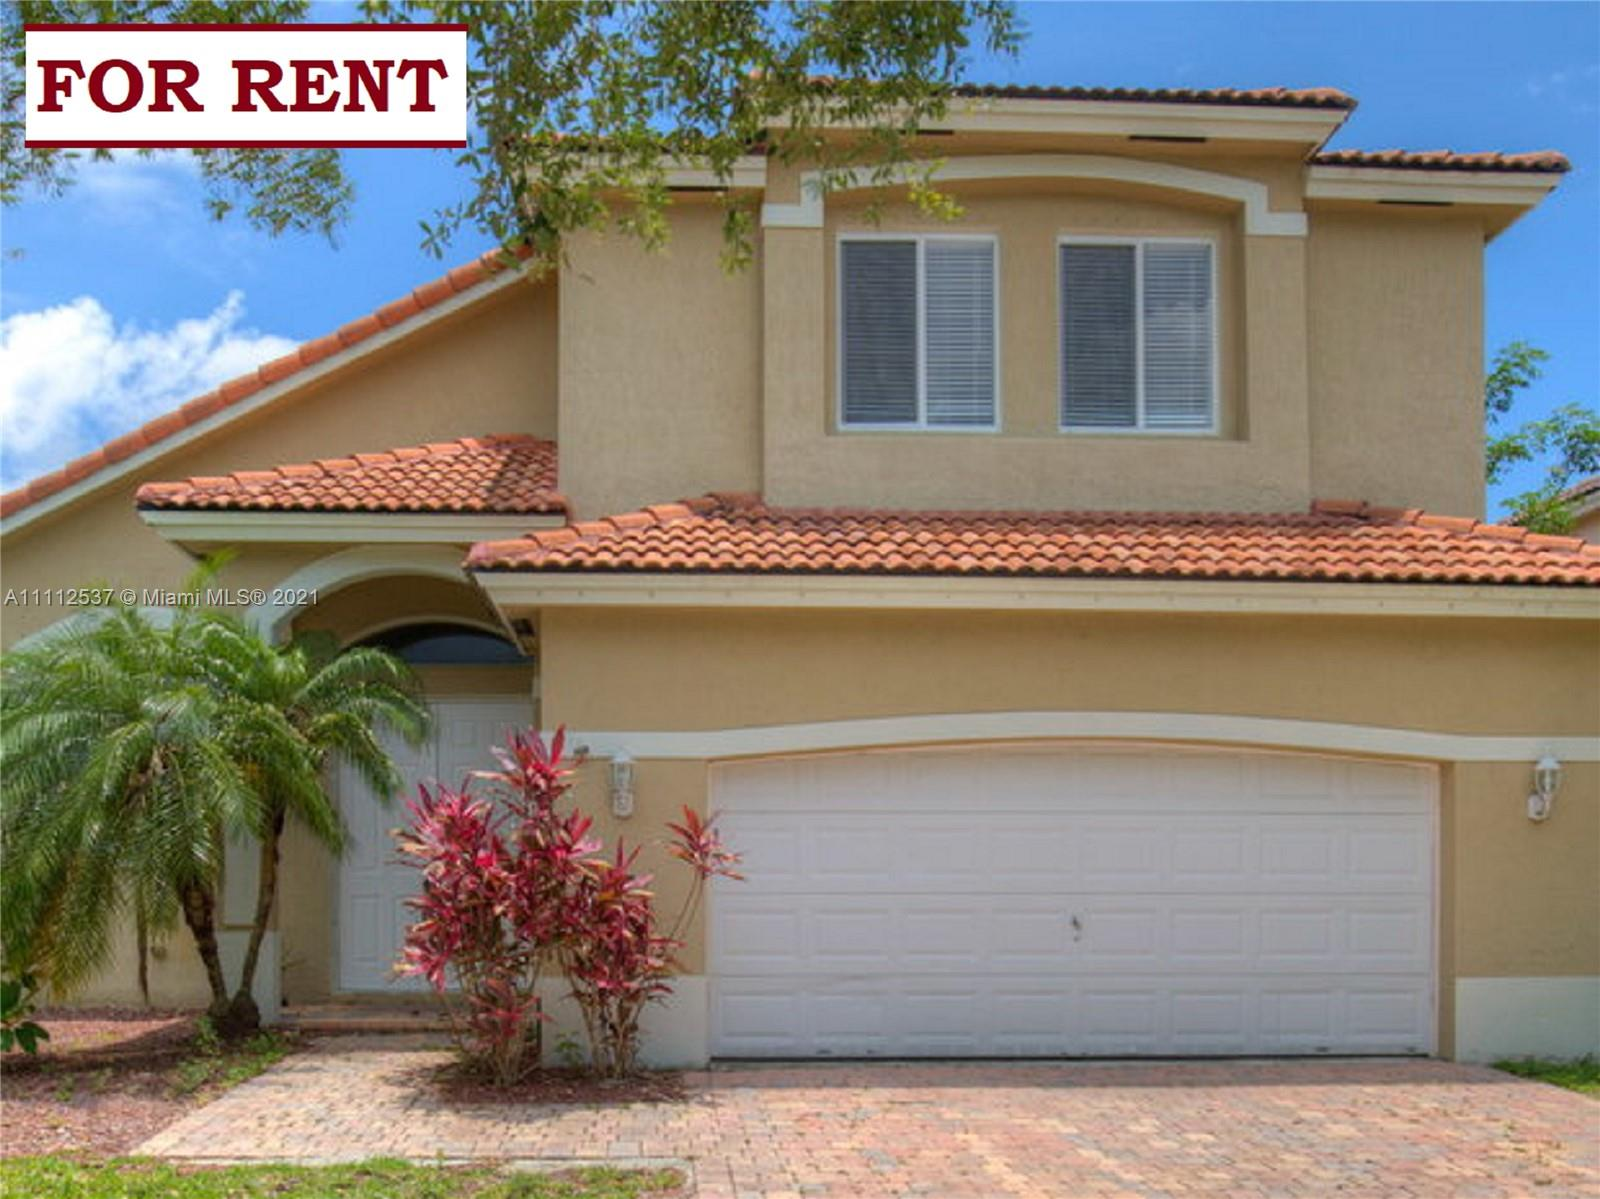 Single Family Home,For Rent,1721 SE 16th Ave, Homestead, Florida 33035,Brickell,realty,broker,condos near me